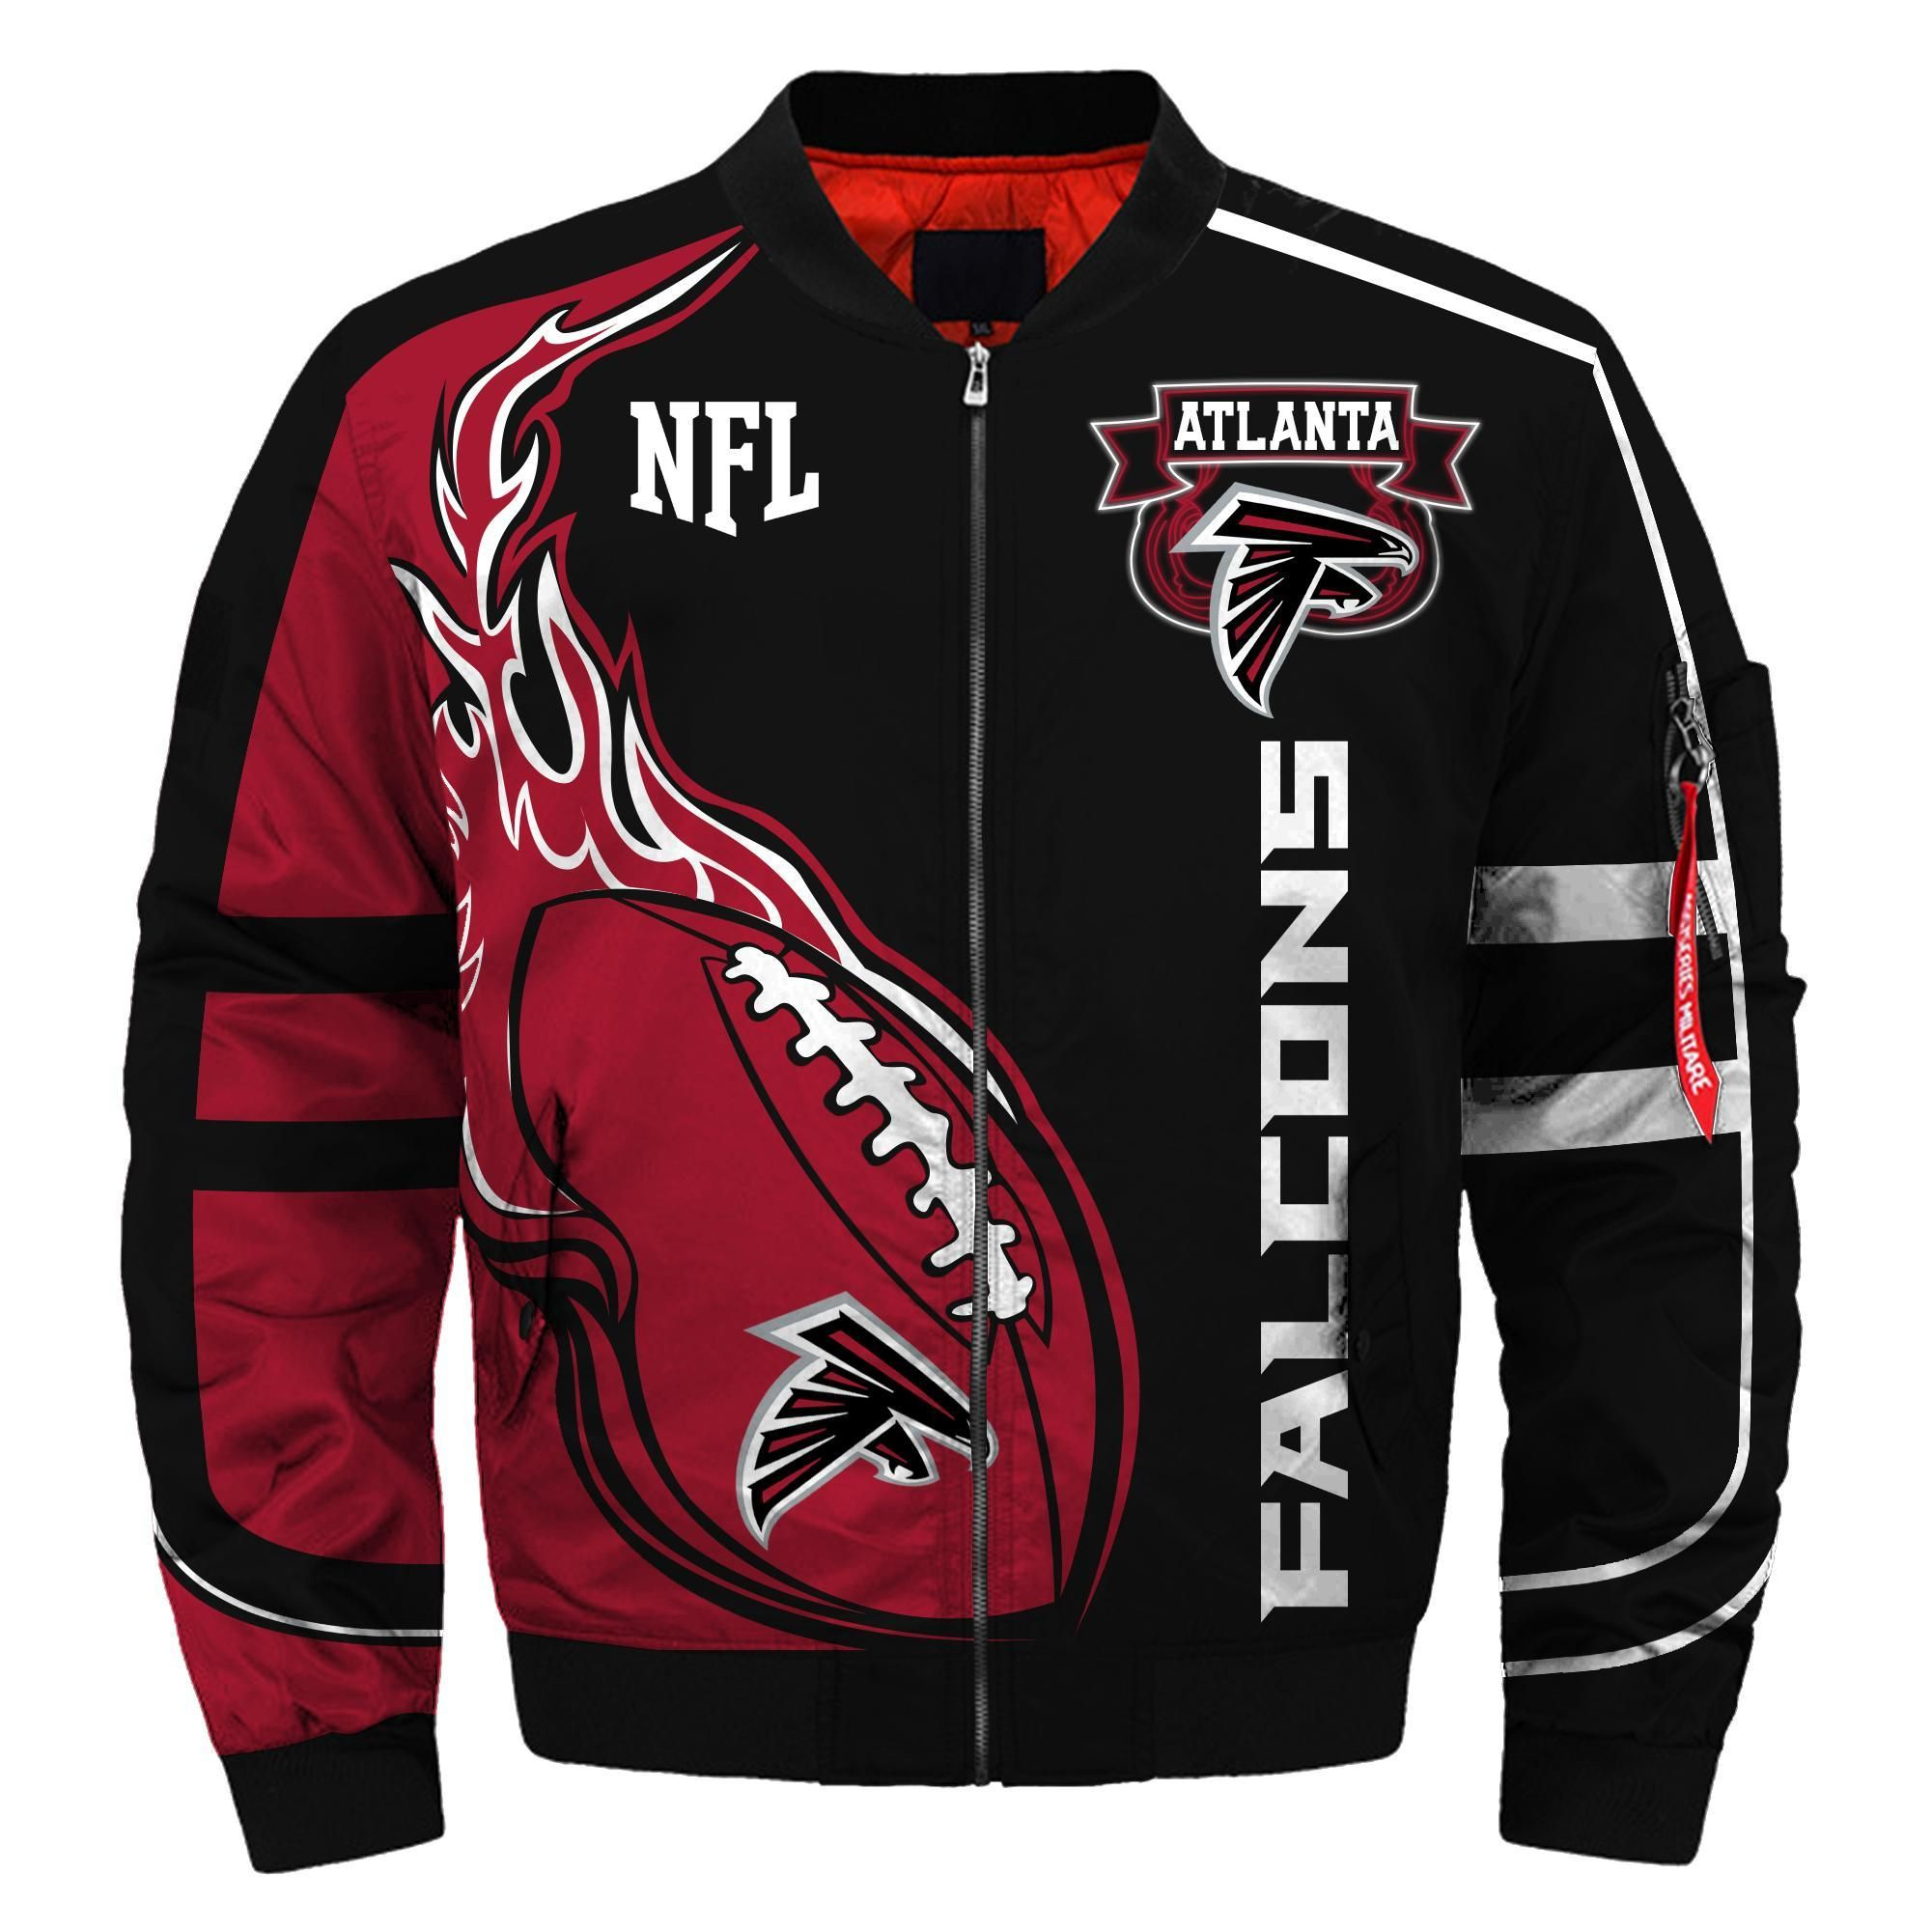 Atlanta Falcons Fans Bomber Jacket Men Women Cotton Padded Air Force One Flight Jacket Unisex Coat Ma025 Lapommenyc Store In 2020 Atlanta Falcons Clothes Bomber Jacket Winter Atlanta Falcons Fans